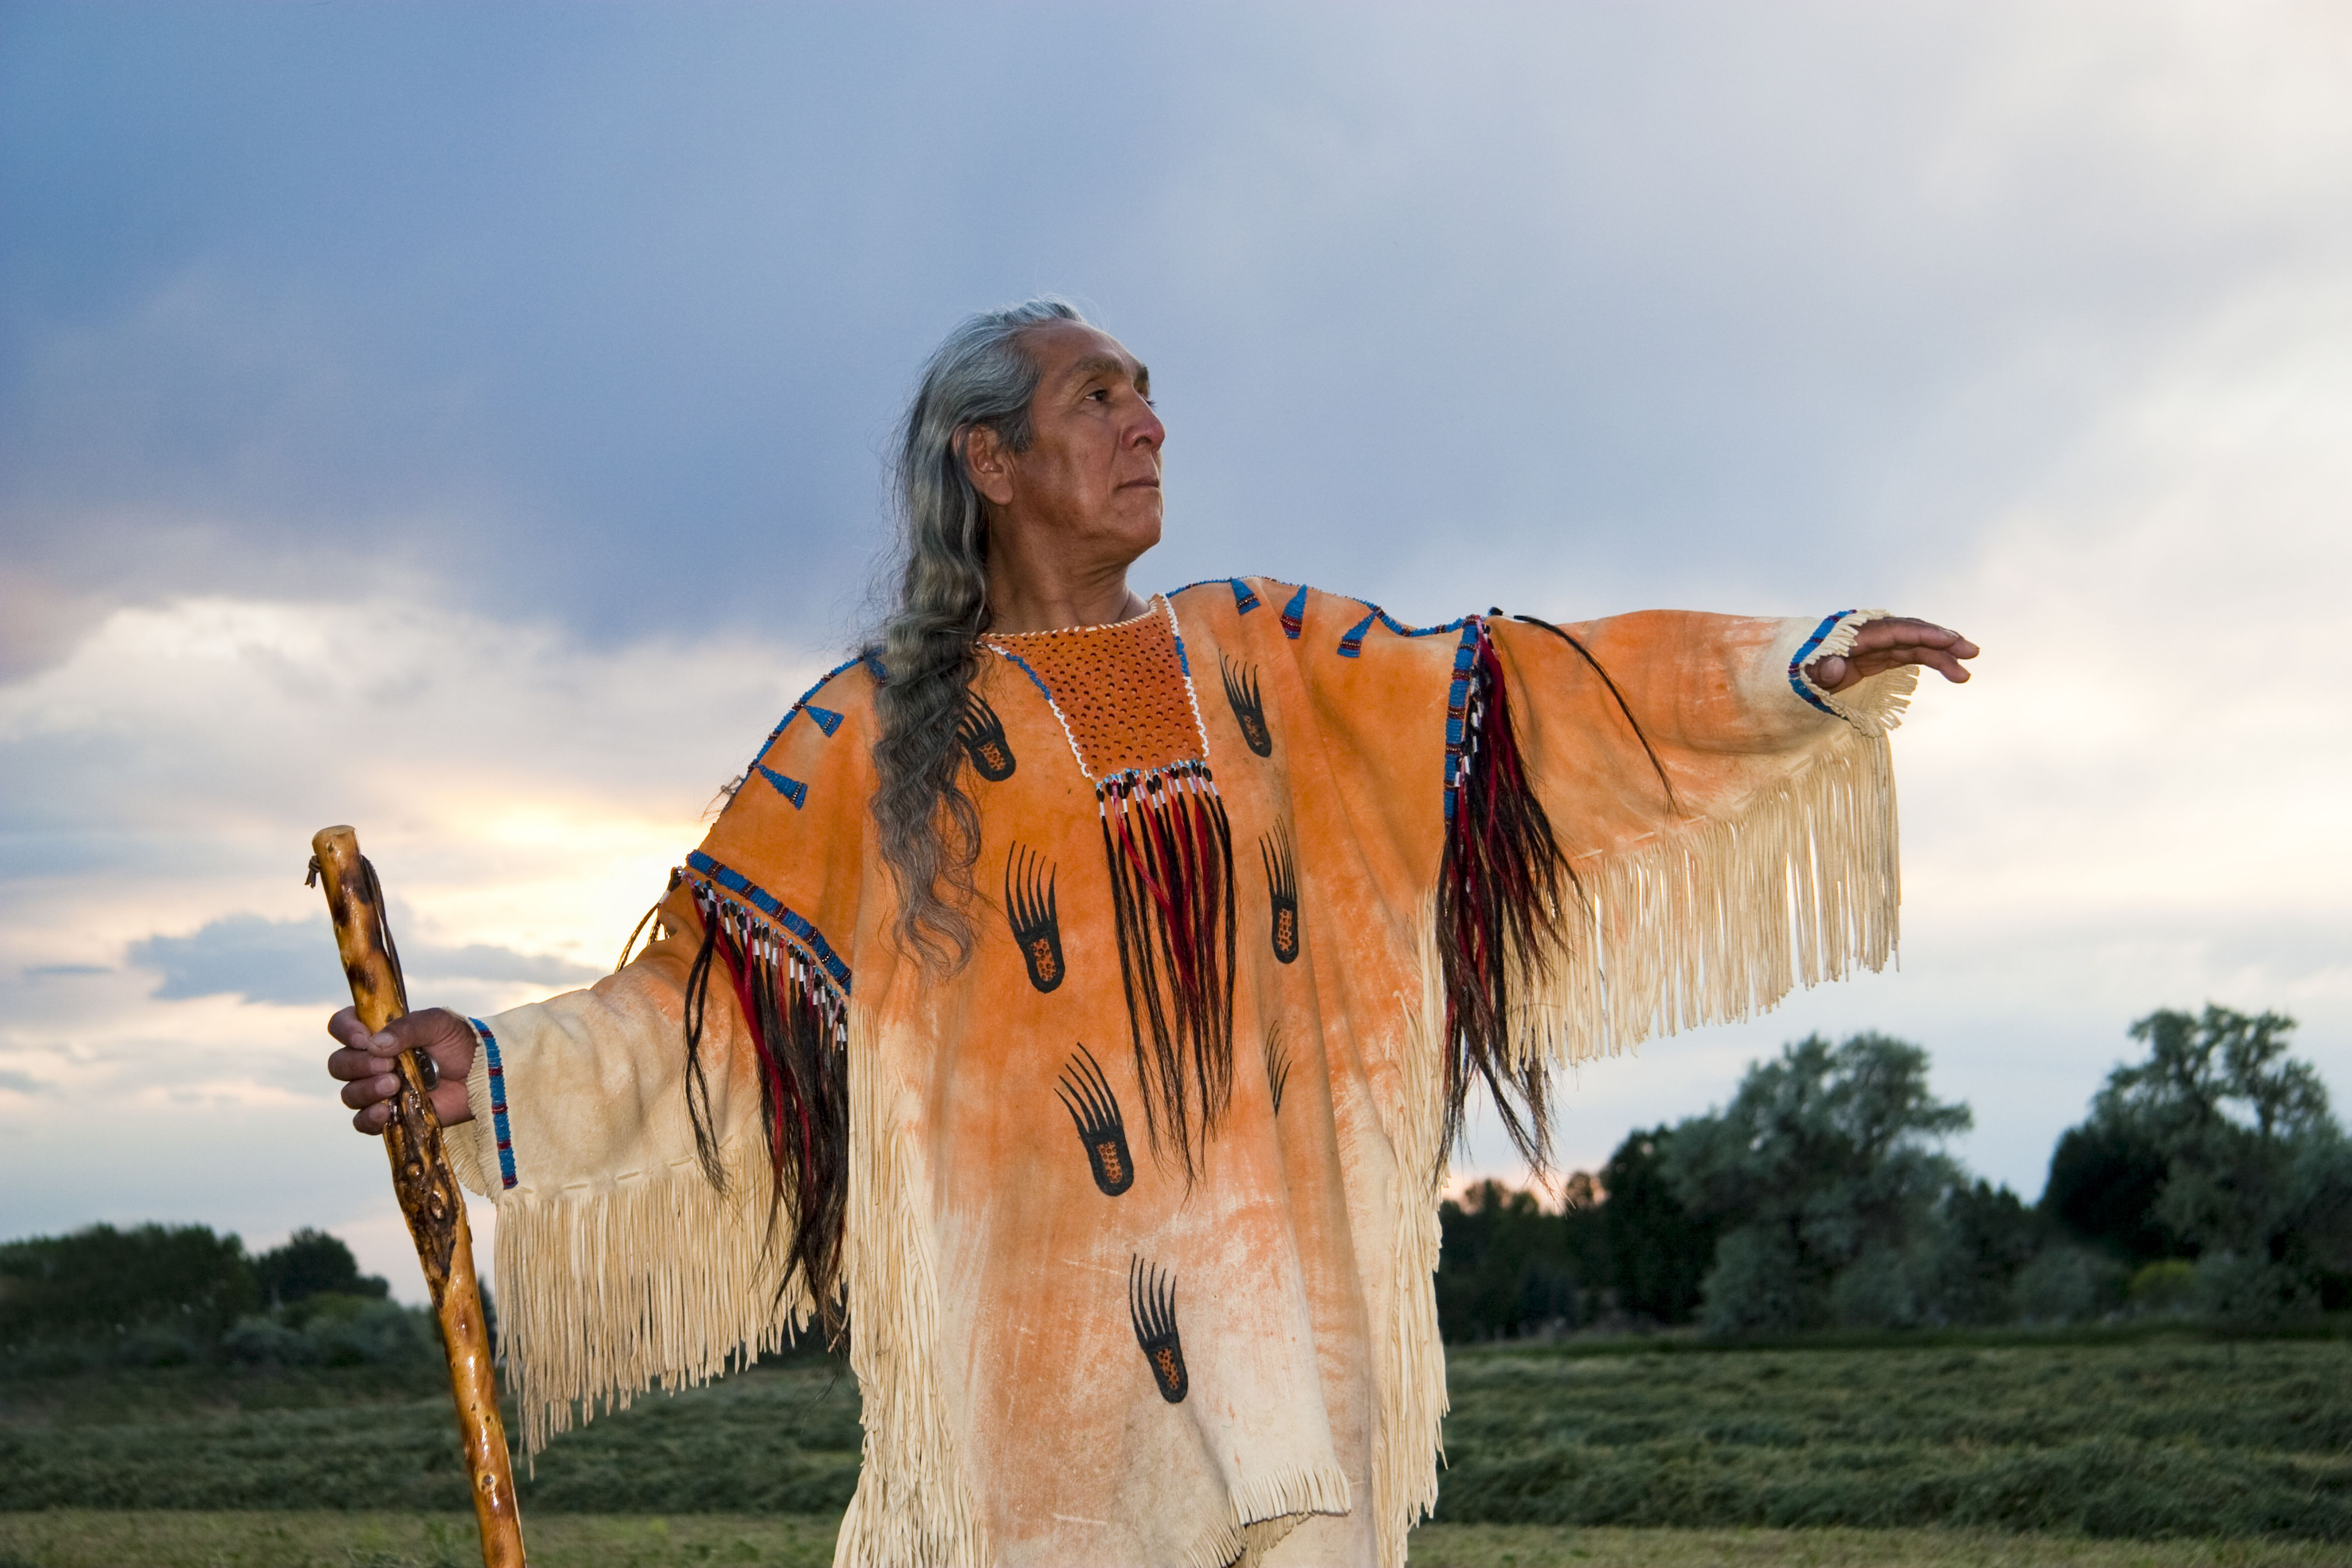 What are some inventions by native americans native american medicine man dressed in ghost shirt idaho usa sciox Image collections